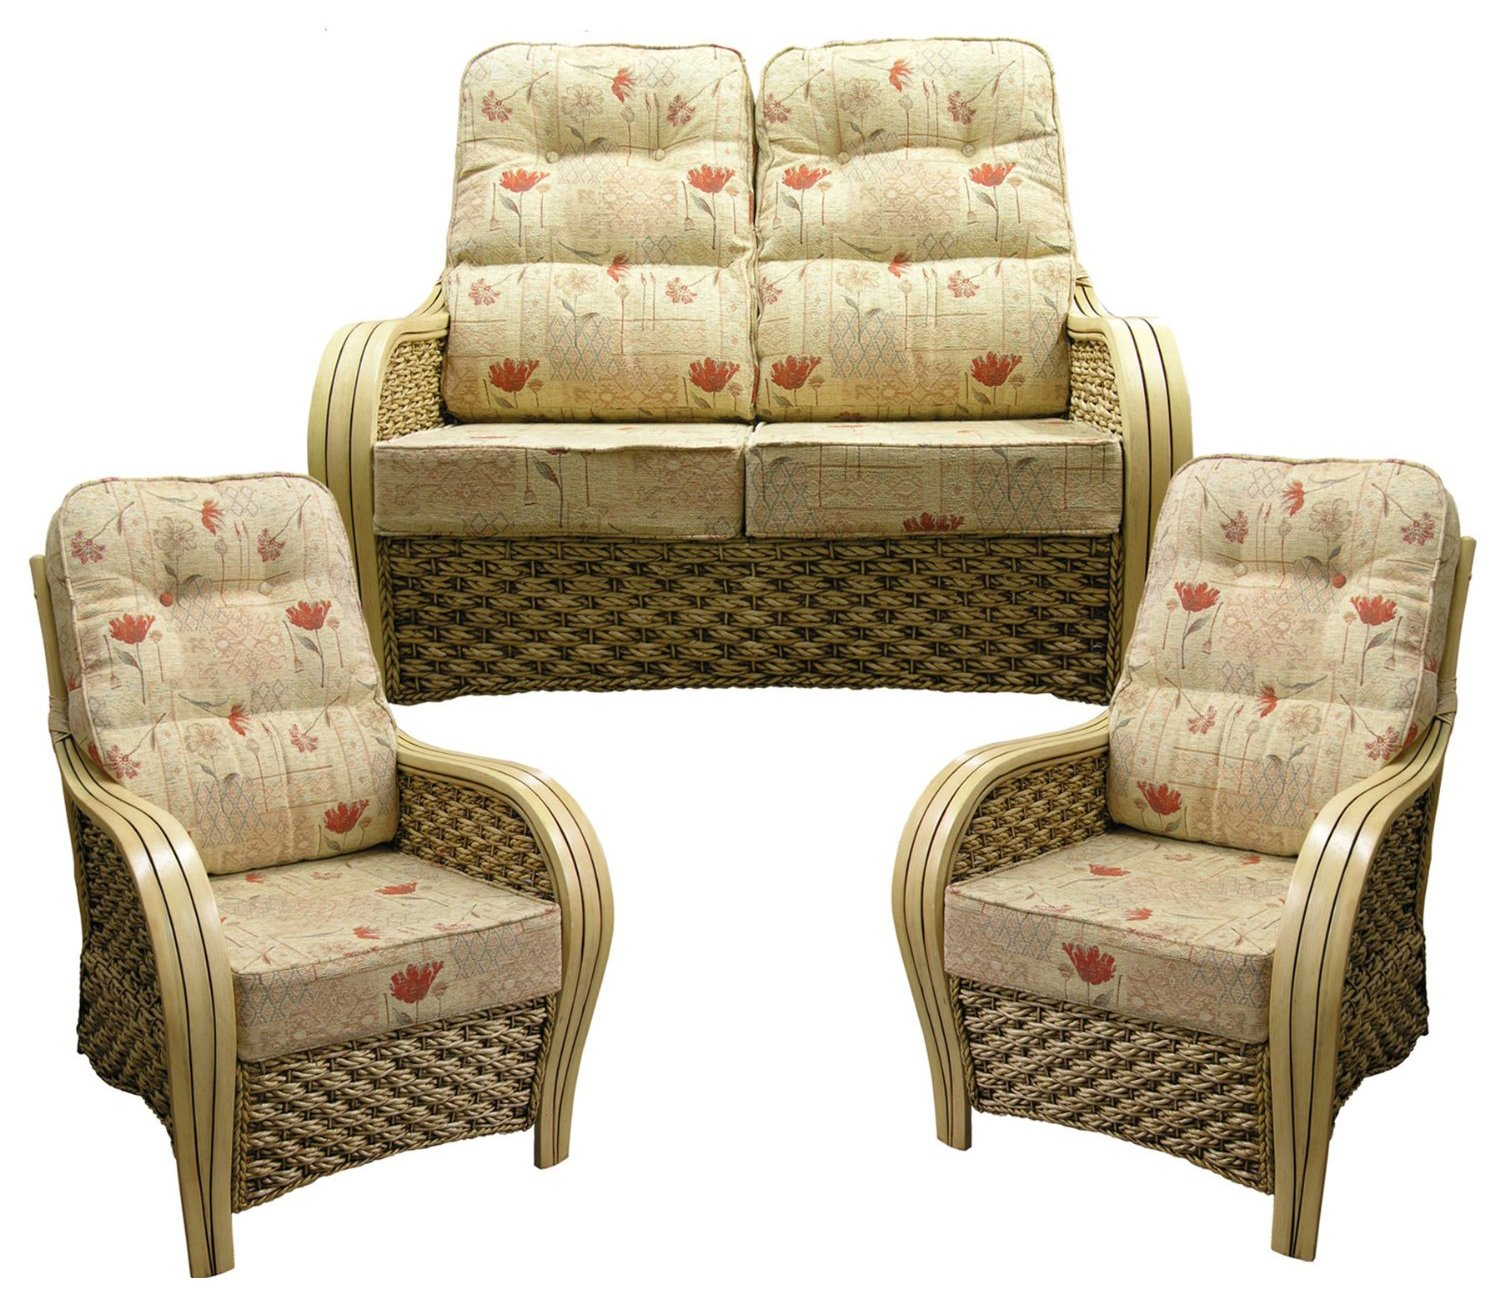 Cane chairs with cushions - Cane Furniture Replacement Cushions Only Deluxe Lumbar Support Suite Cane Wicker Rattan Furniture Gilda Dean Gold With Self Piping